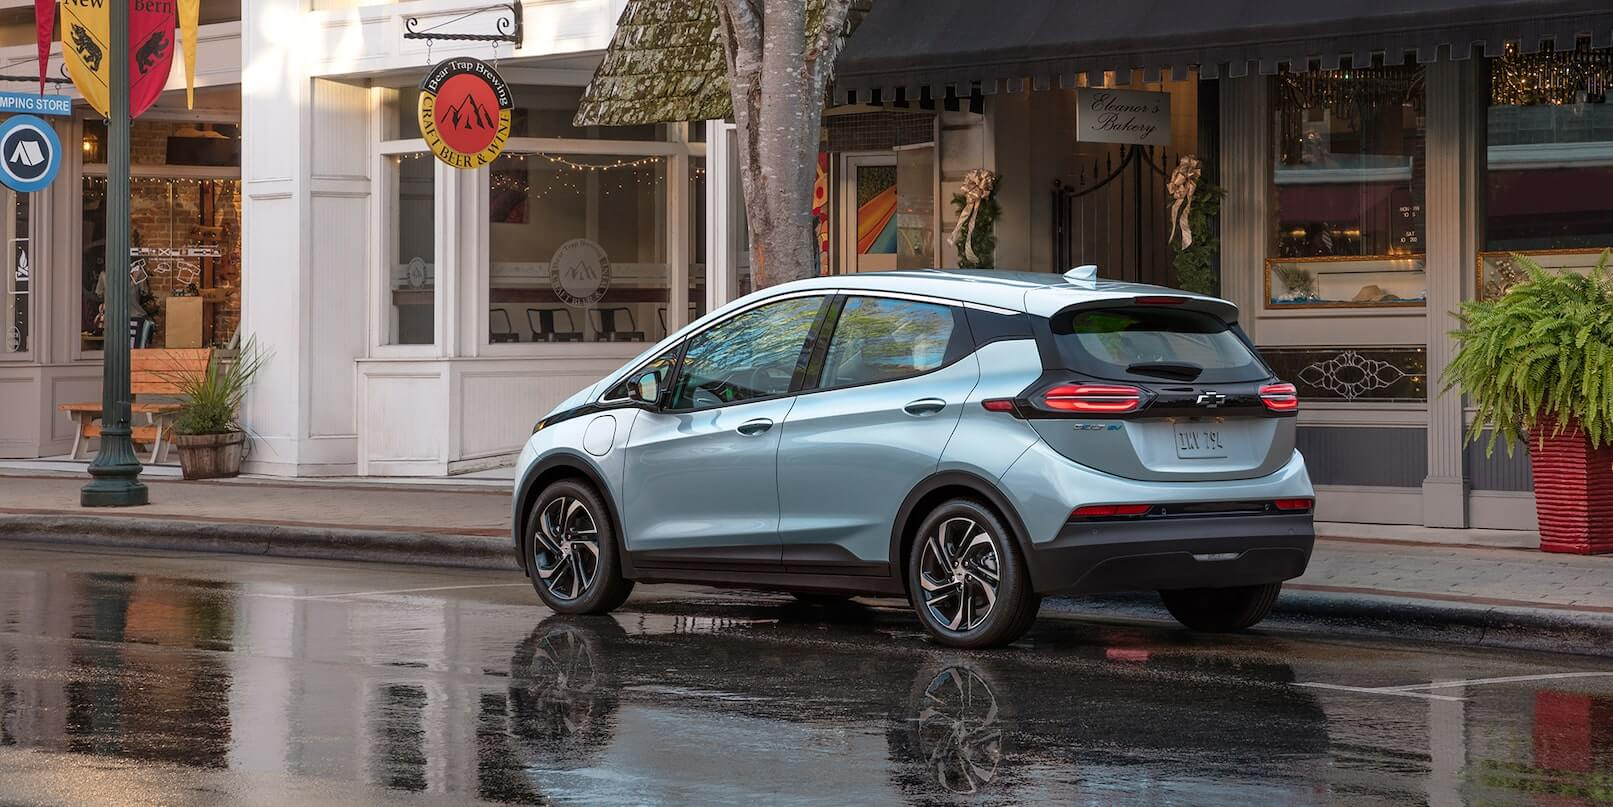 Left-rear side exterior view of the 2022 Chevrolet Bolt EV parked on the road.